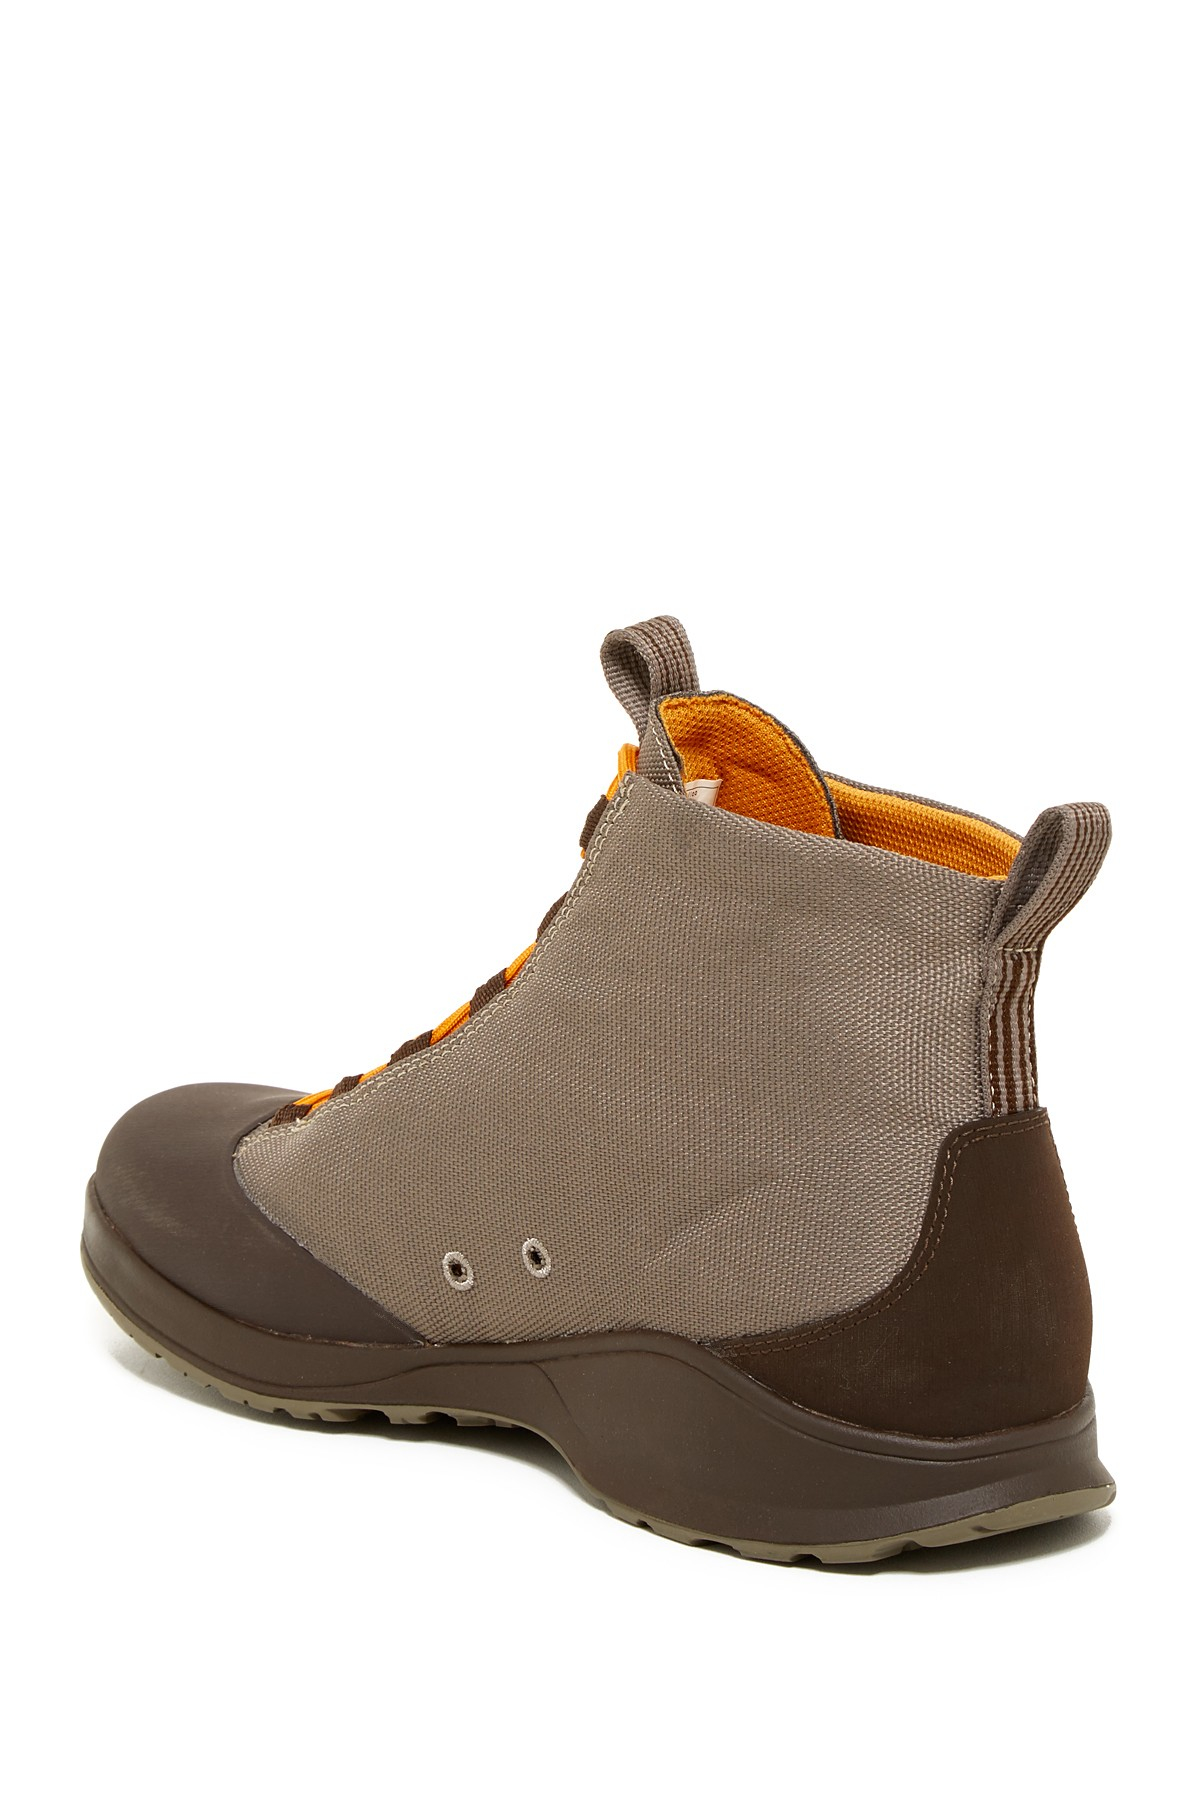 Lyst Chaco Tedinho Bulloo Boot In Brown For Men